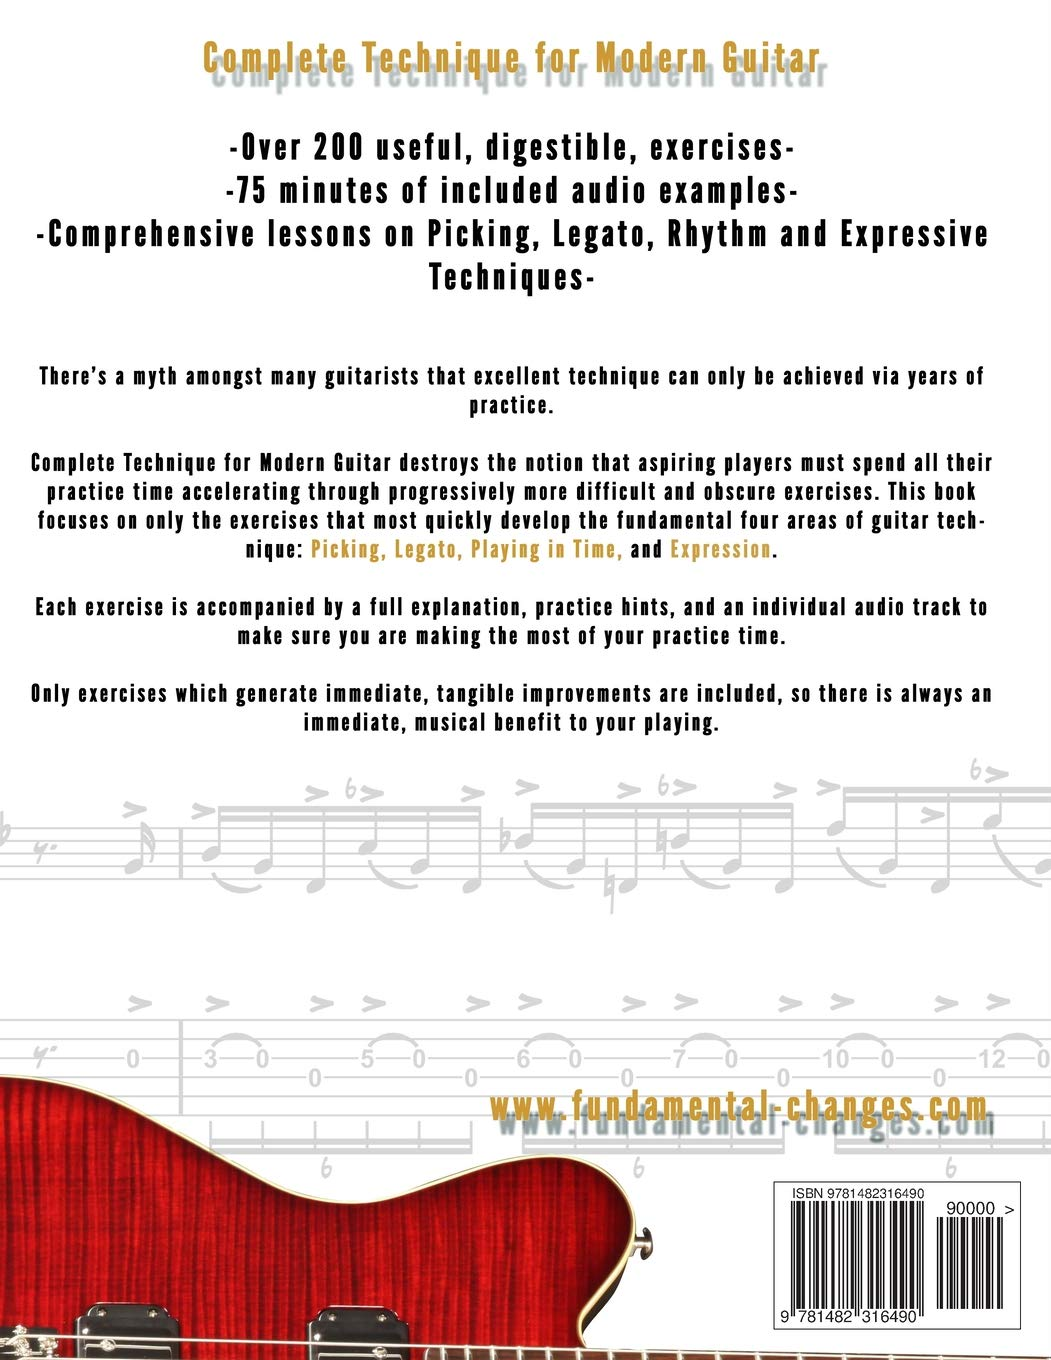 Complete Technique for Modern Guitar: Amazon.es: Alexander, Mr ...